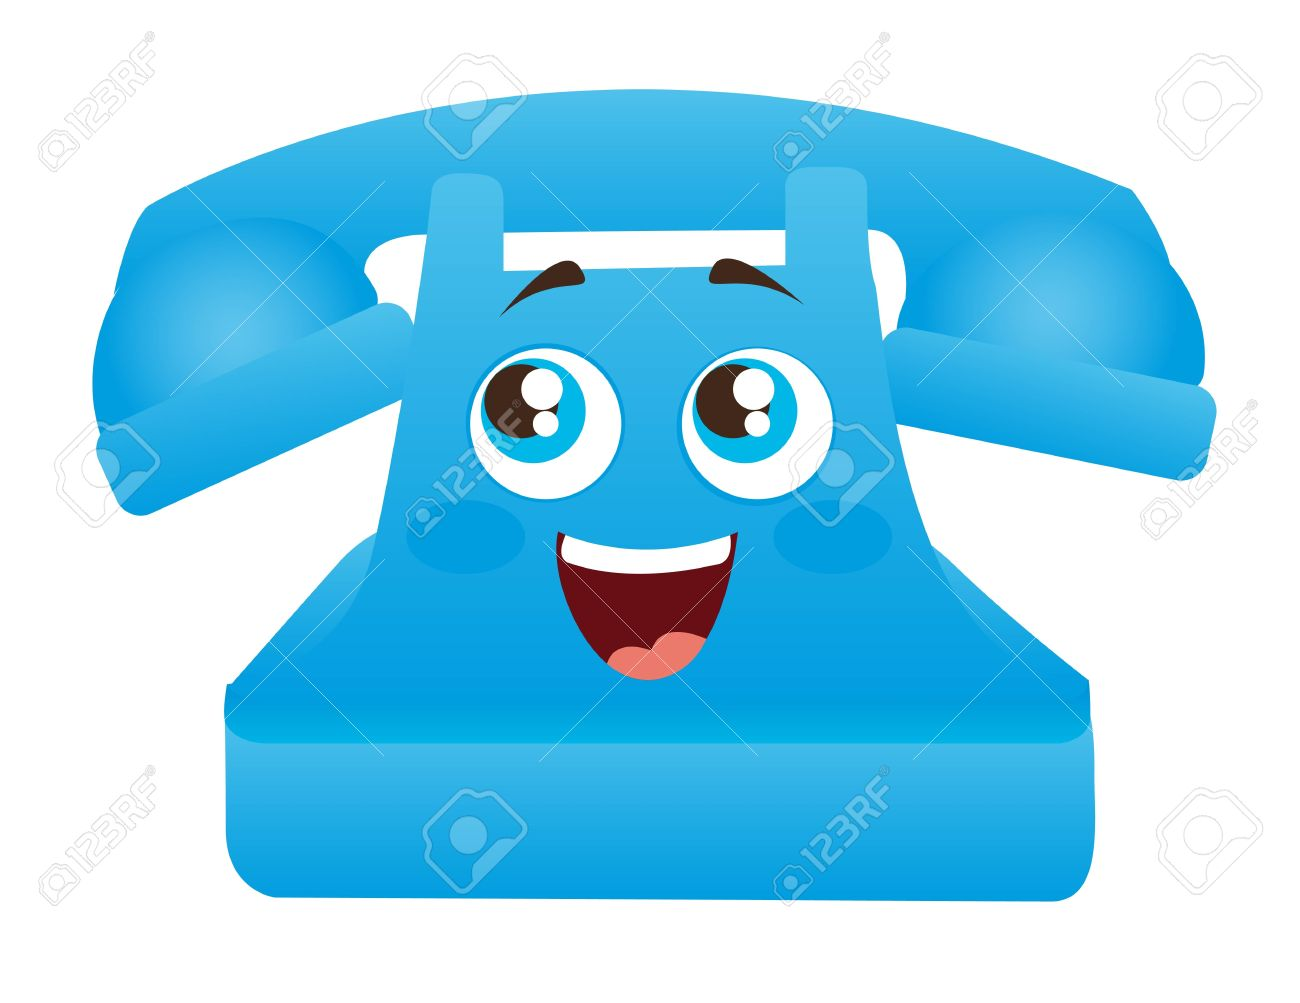 blue telephone cartoon with eyes and mouth illustration - 11886129